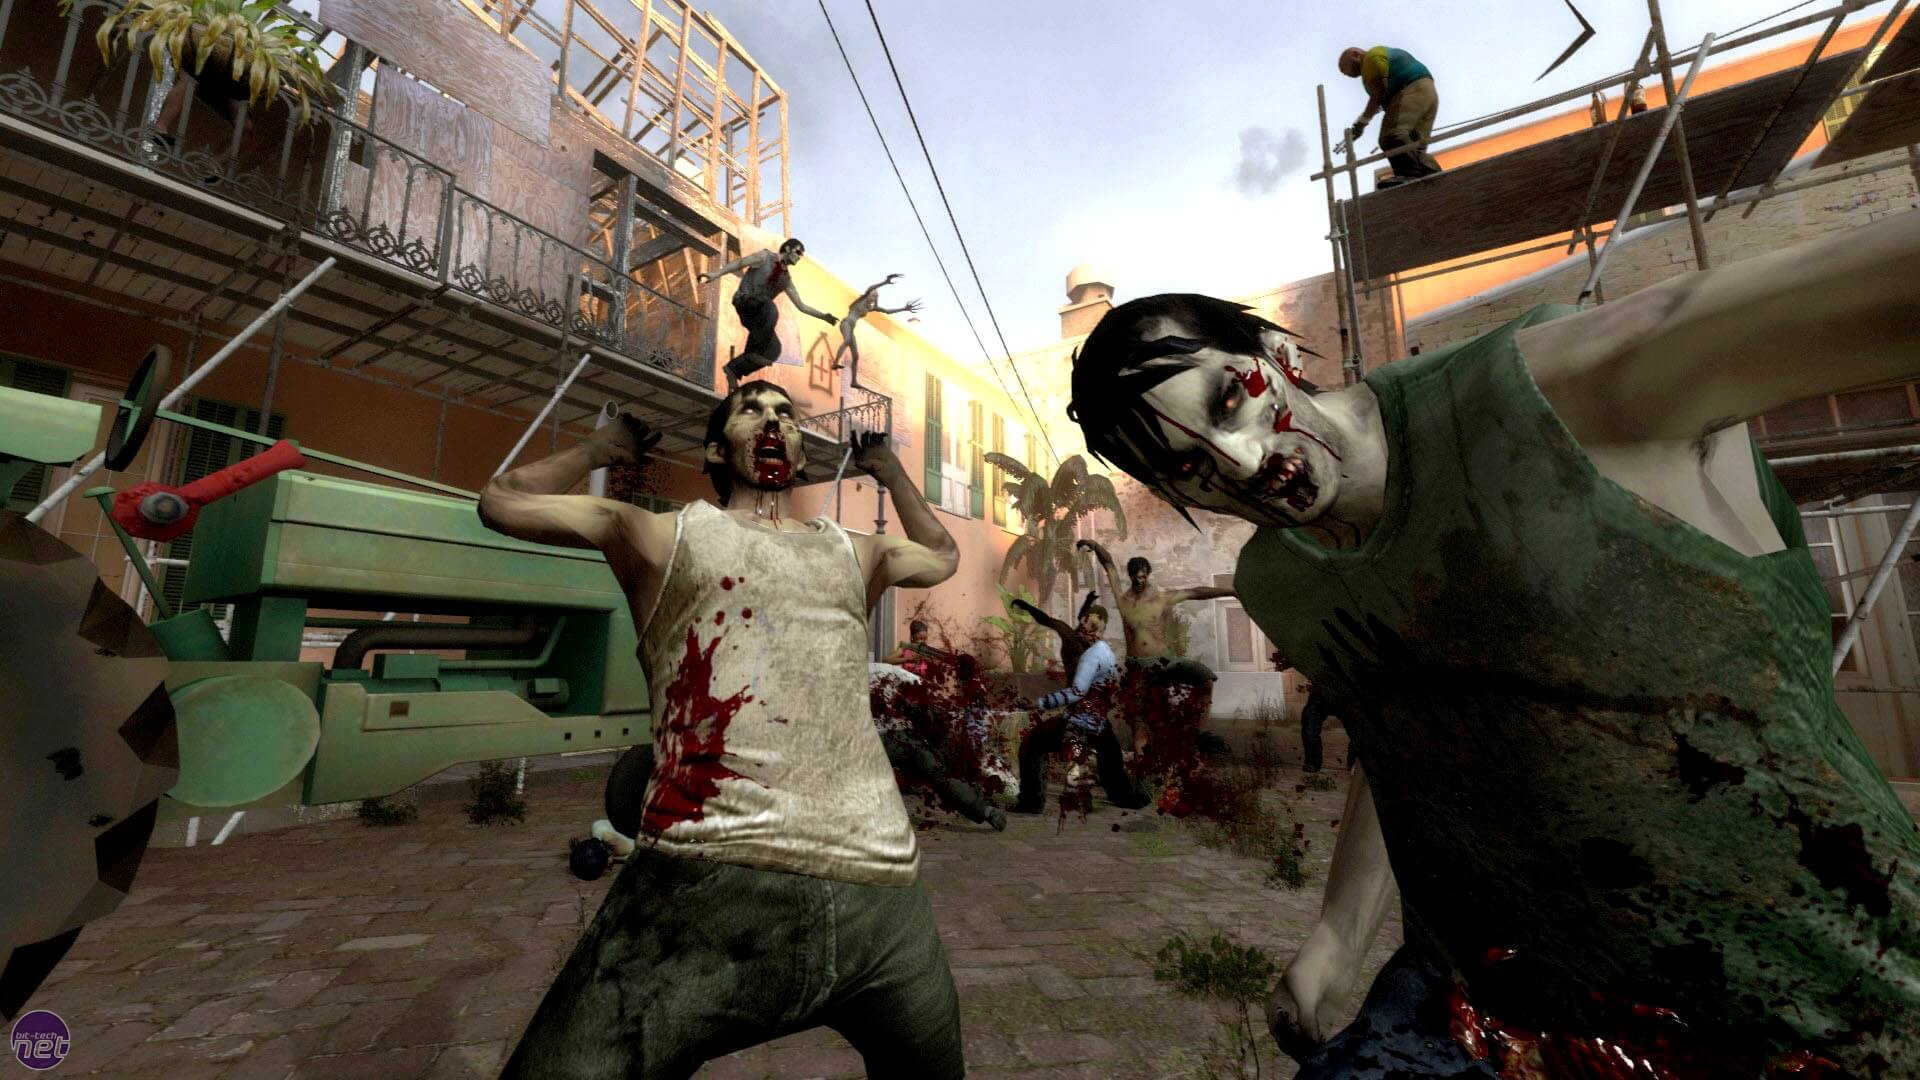 Left 4 Dead 2 Cheats and Trainers - Video Games, Wikis